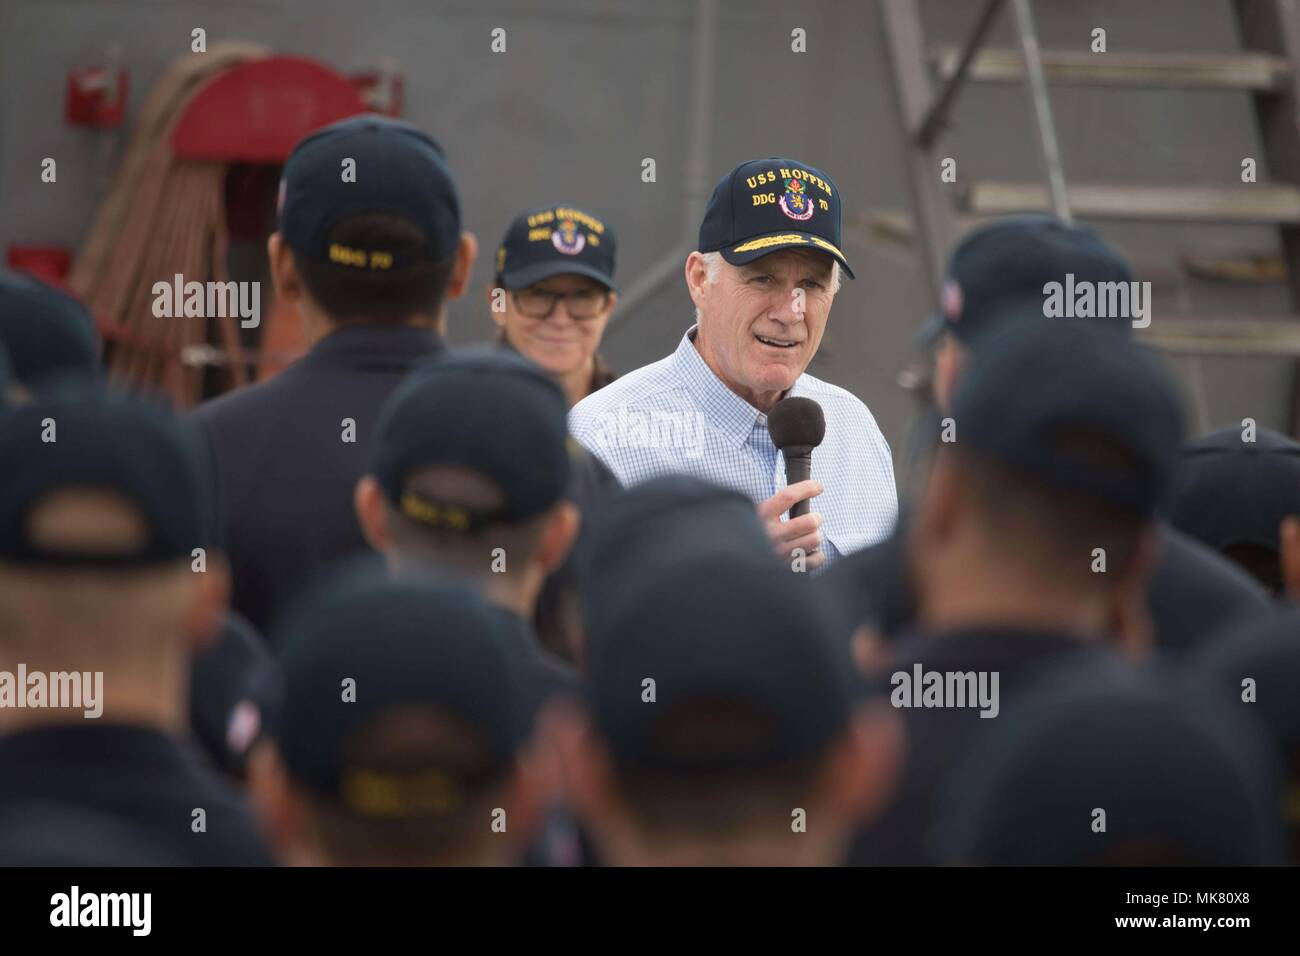 ARABIAN GULF (Nov. 23, 2017) Secretary of the Navy Richard V. Spencer addresses crewmembers of the Arleigh Burke-class guided-missile destroyer USS Hopper (DDG 70) during an all-hands call on the ship's flight deck on Thanksgiving Day. Hopper is deployed to the U.S. 5th Fleet area of operations in support of maritime security operations to reassure allies and partners and preserve the freedom of navigation and the free flow of commerce in the region. (U.S. Navy photo by Fire Controlman 1st Class Joseph Saxon/Released) - Stock Image